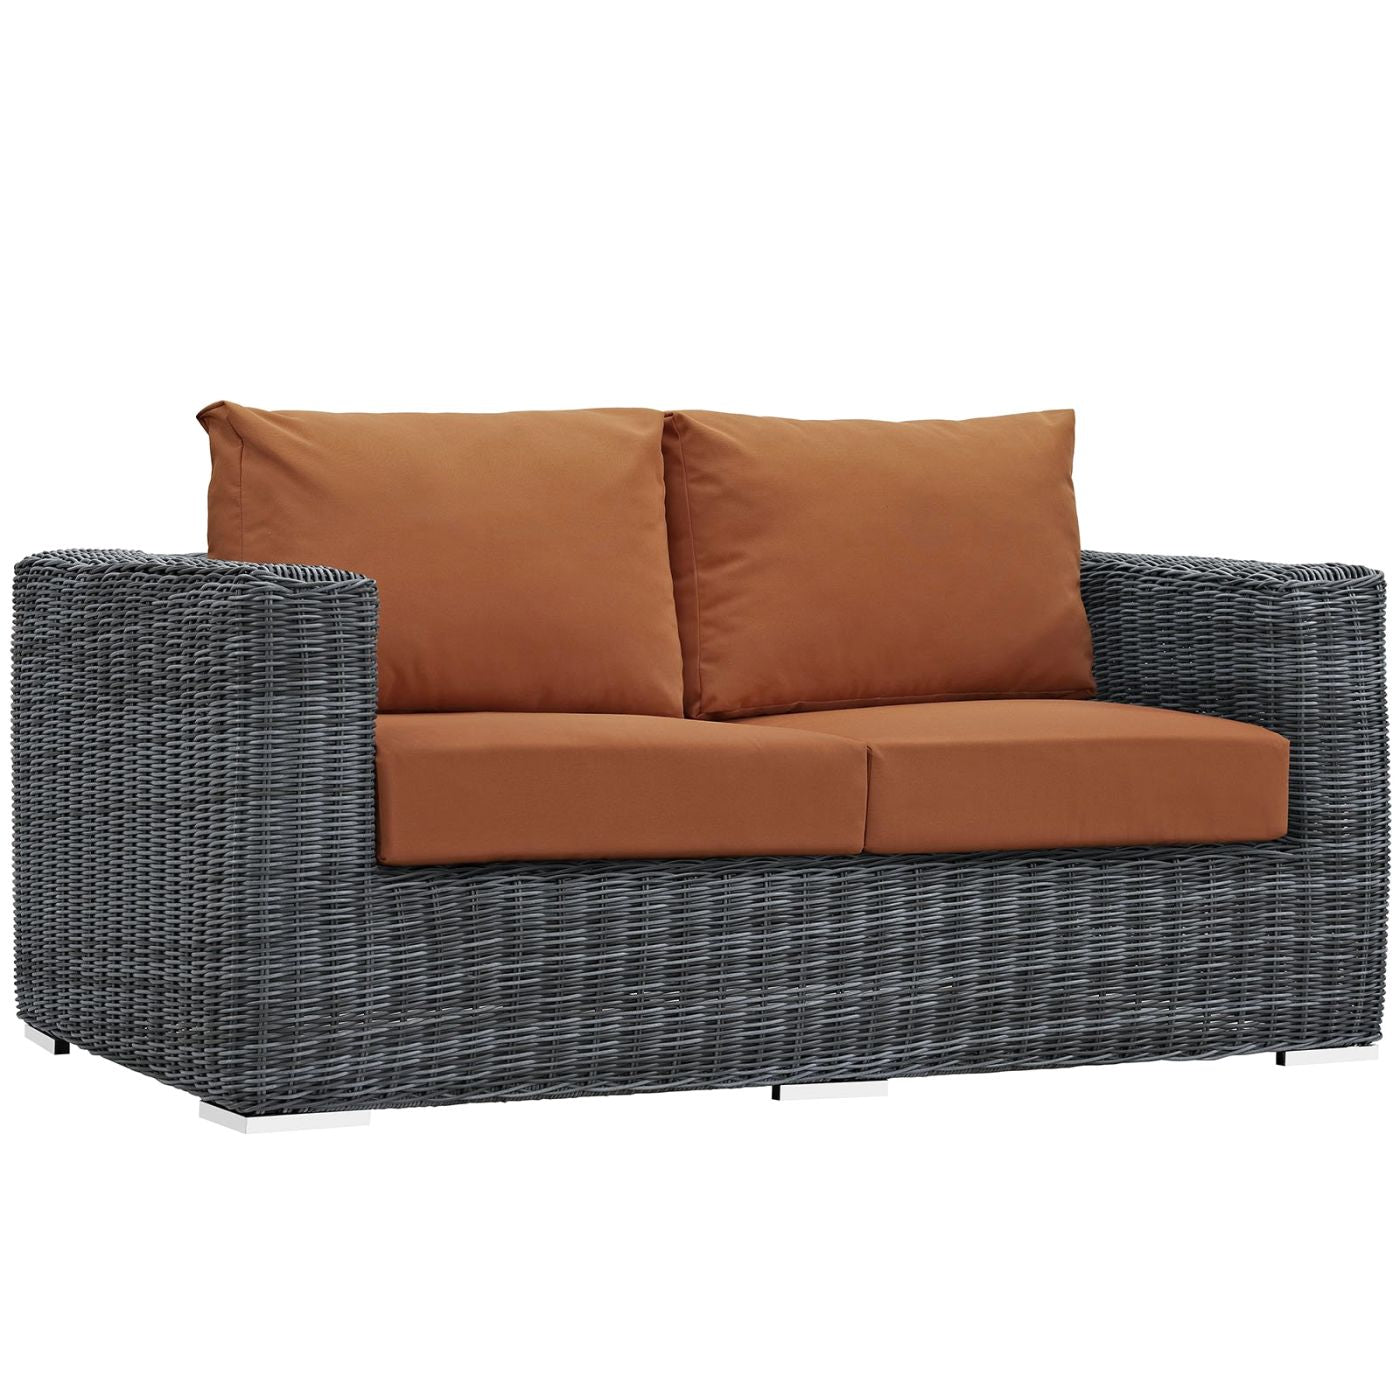 Outdoor Sofas & Loveseats at Contemporary Furniture Warehouse